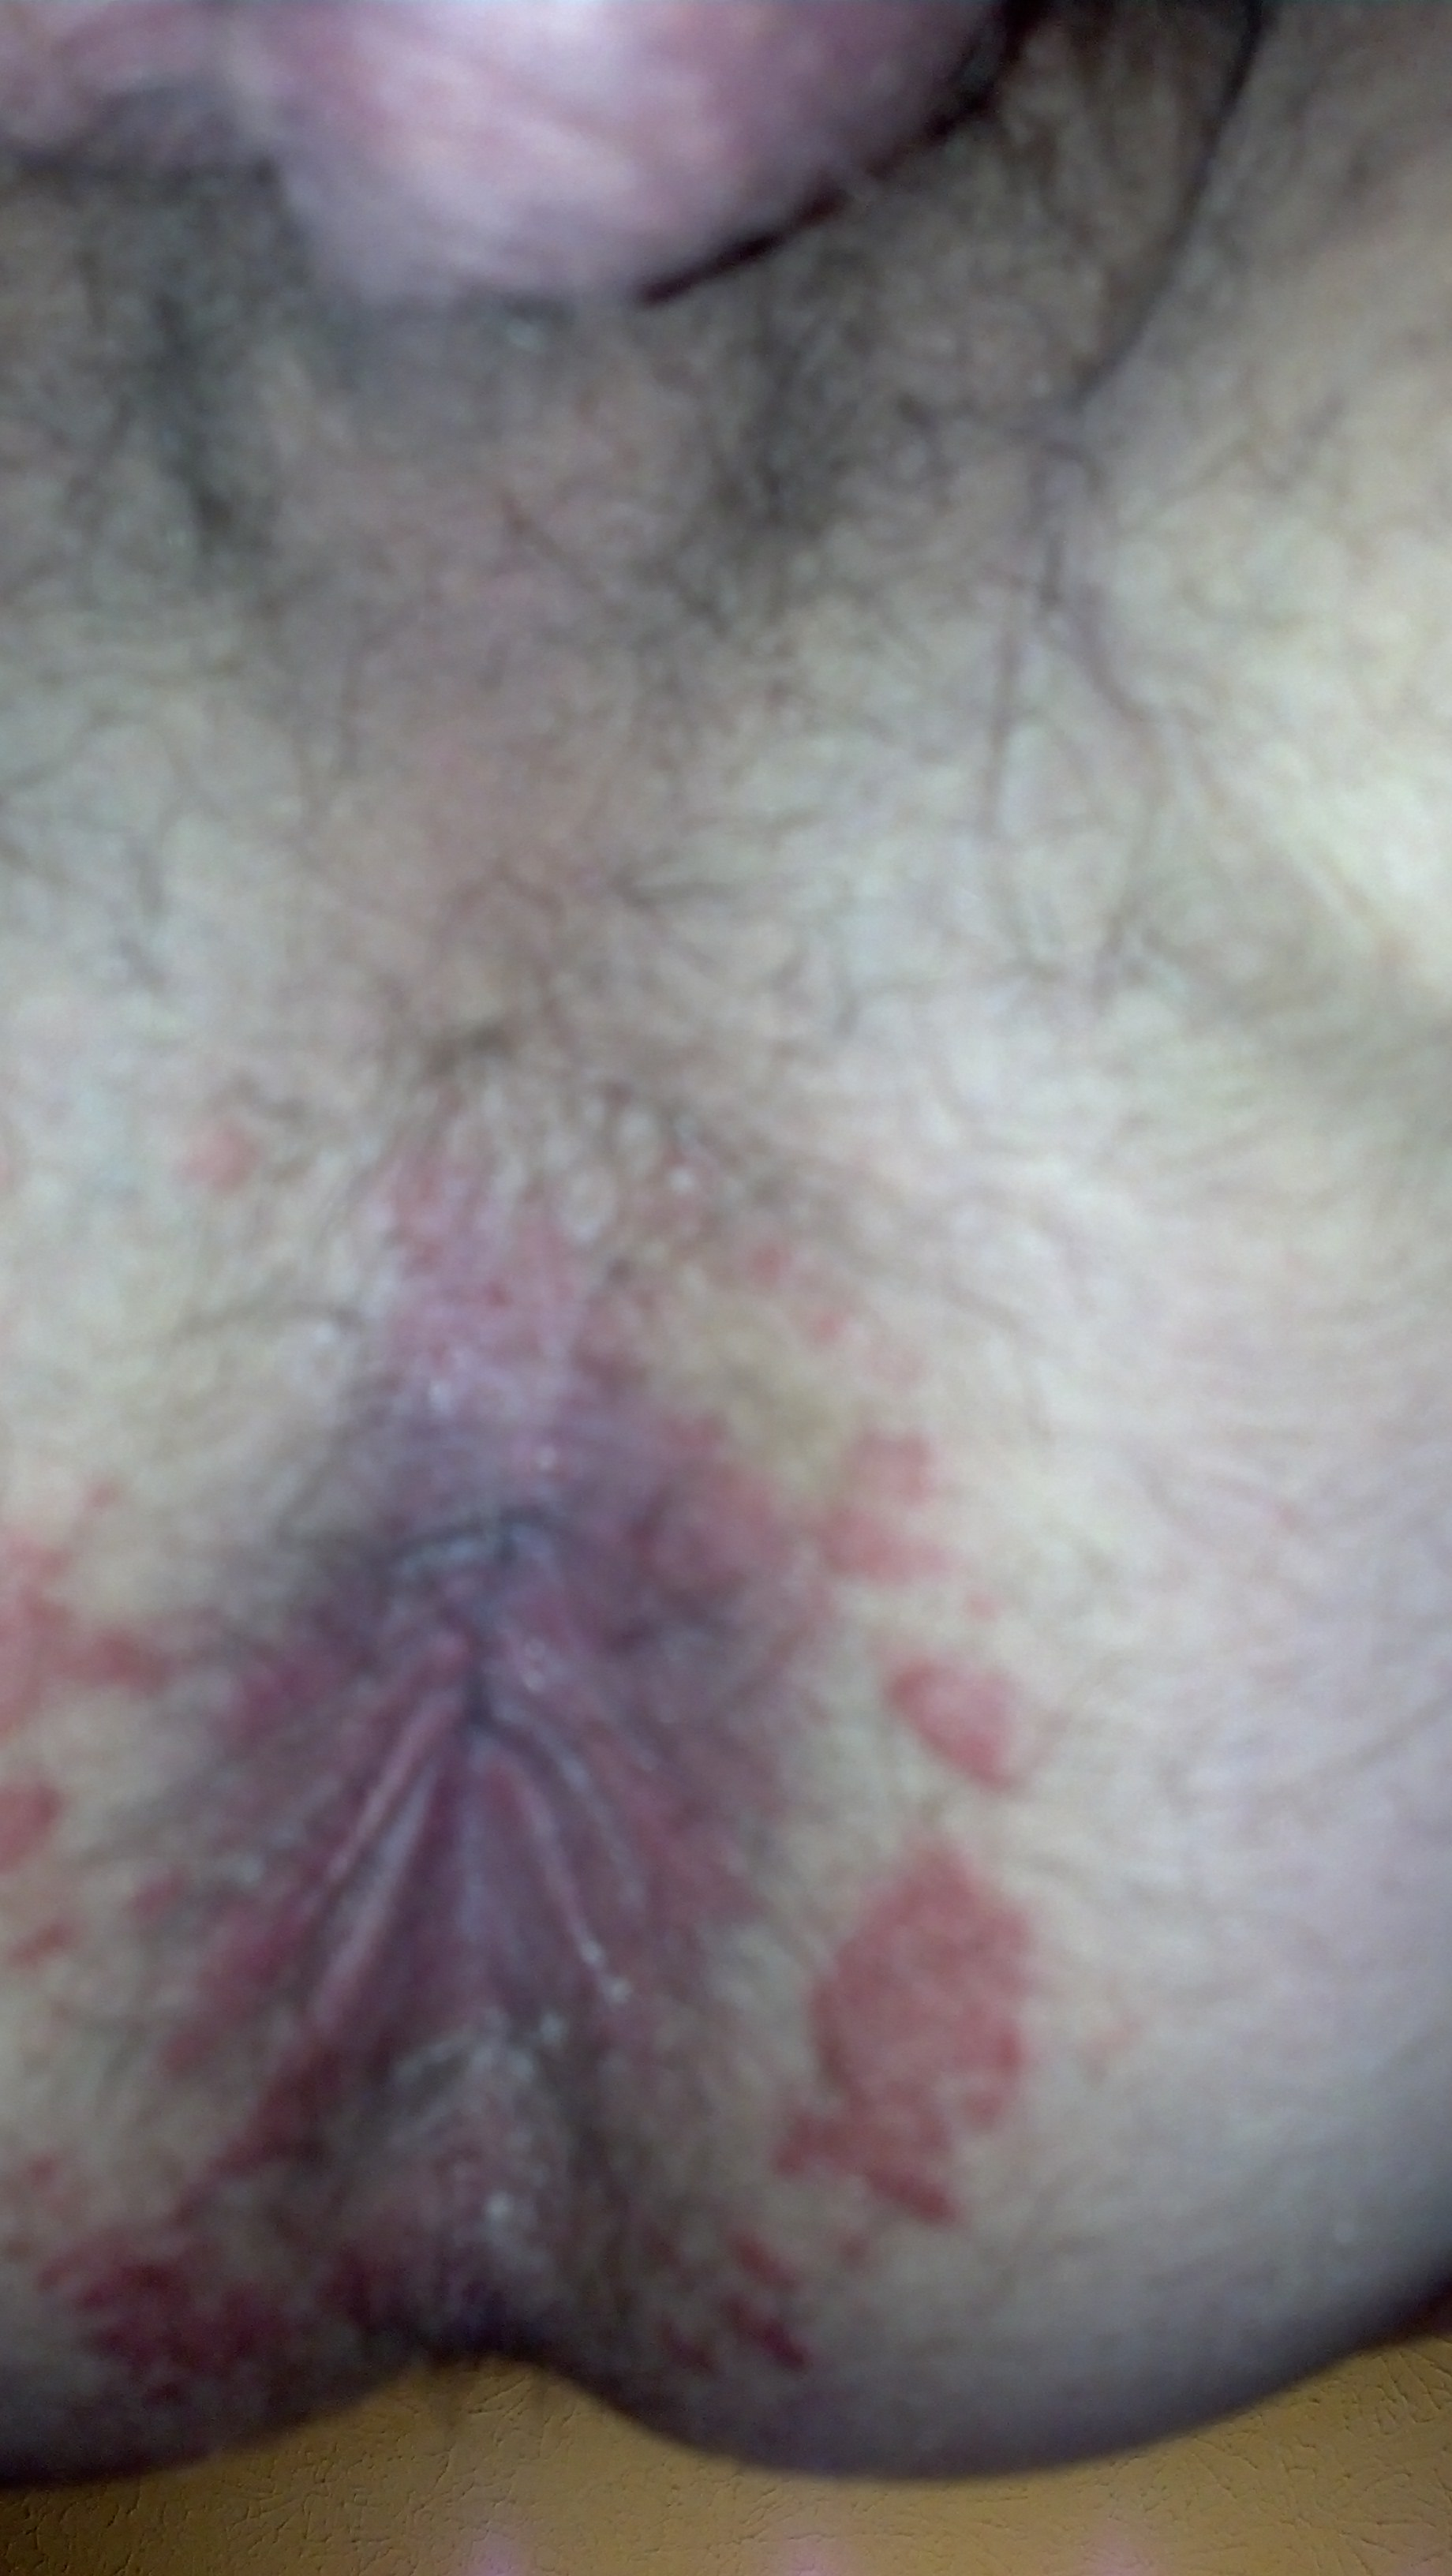 anal burning itching induration